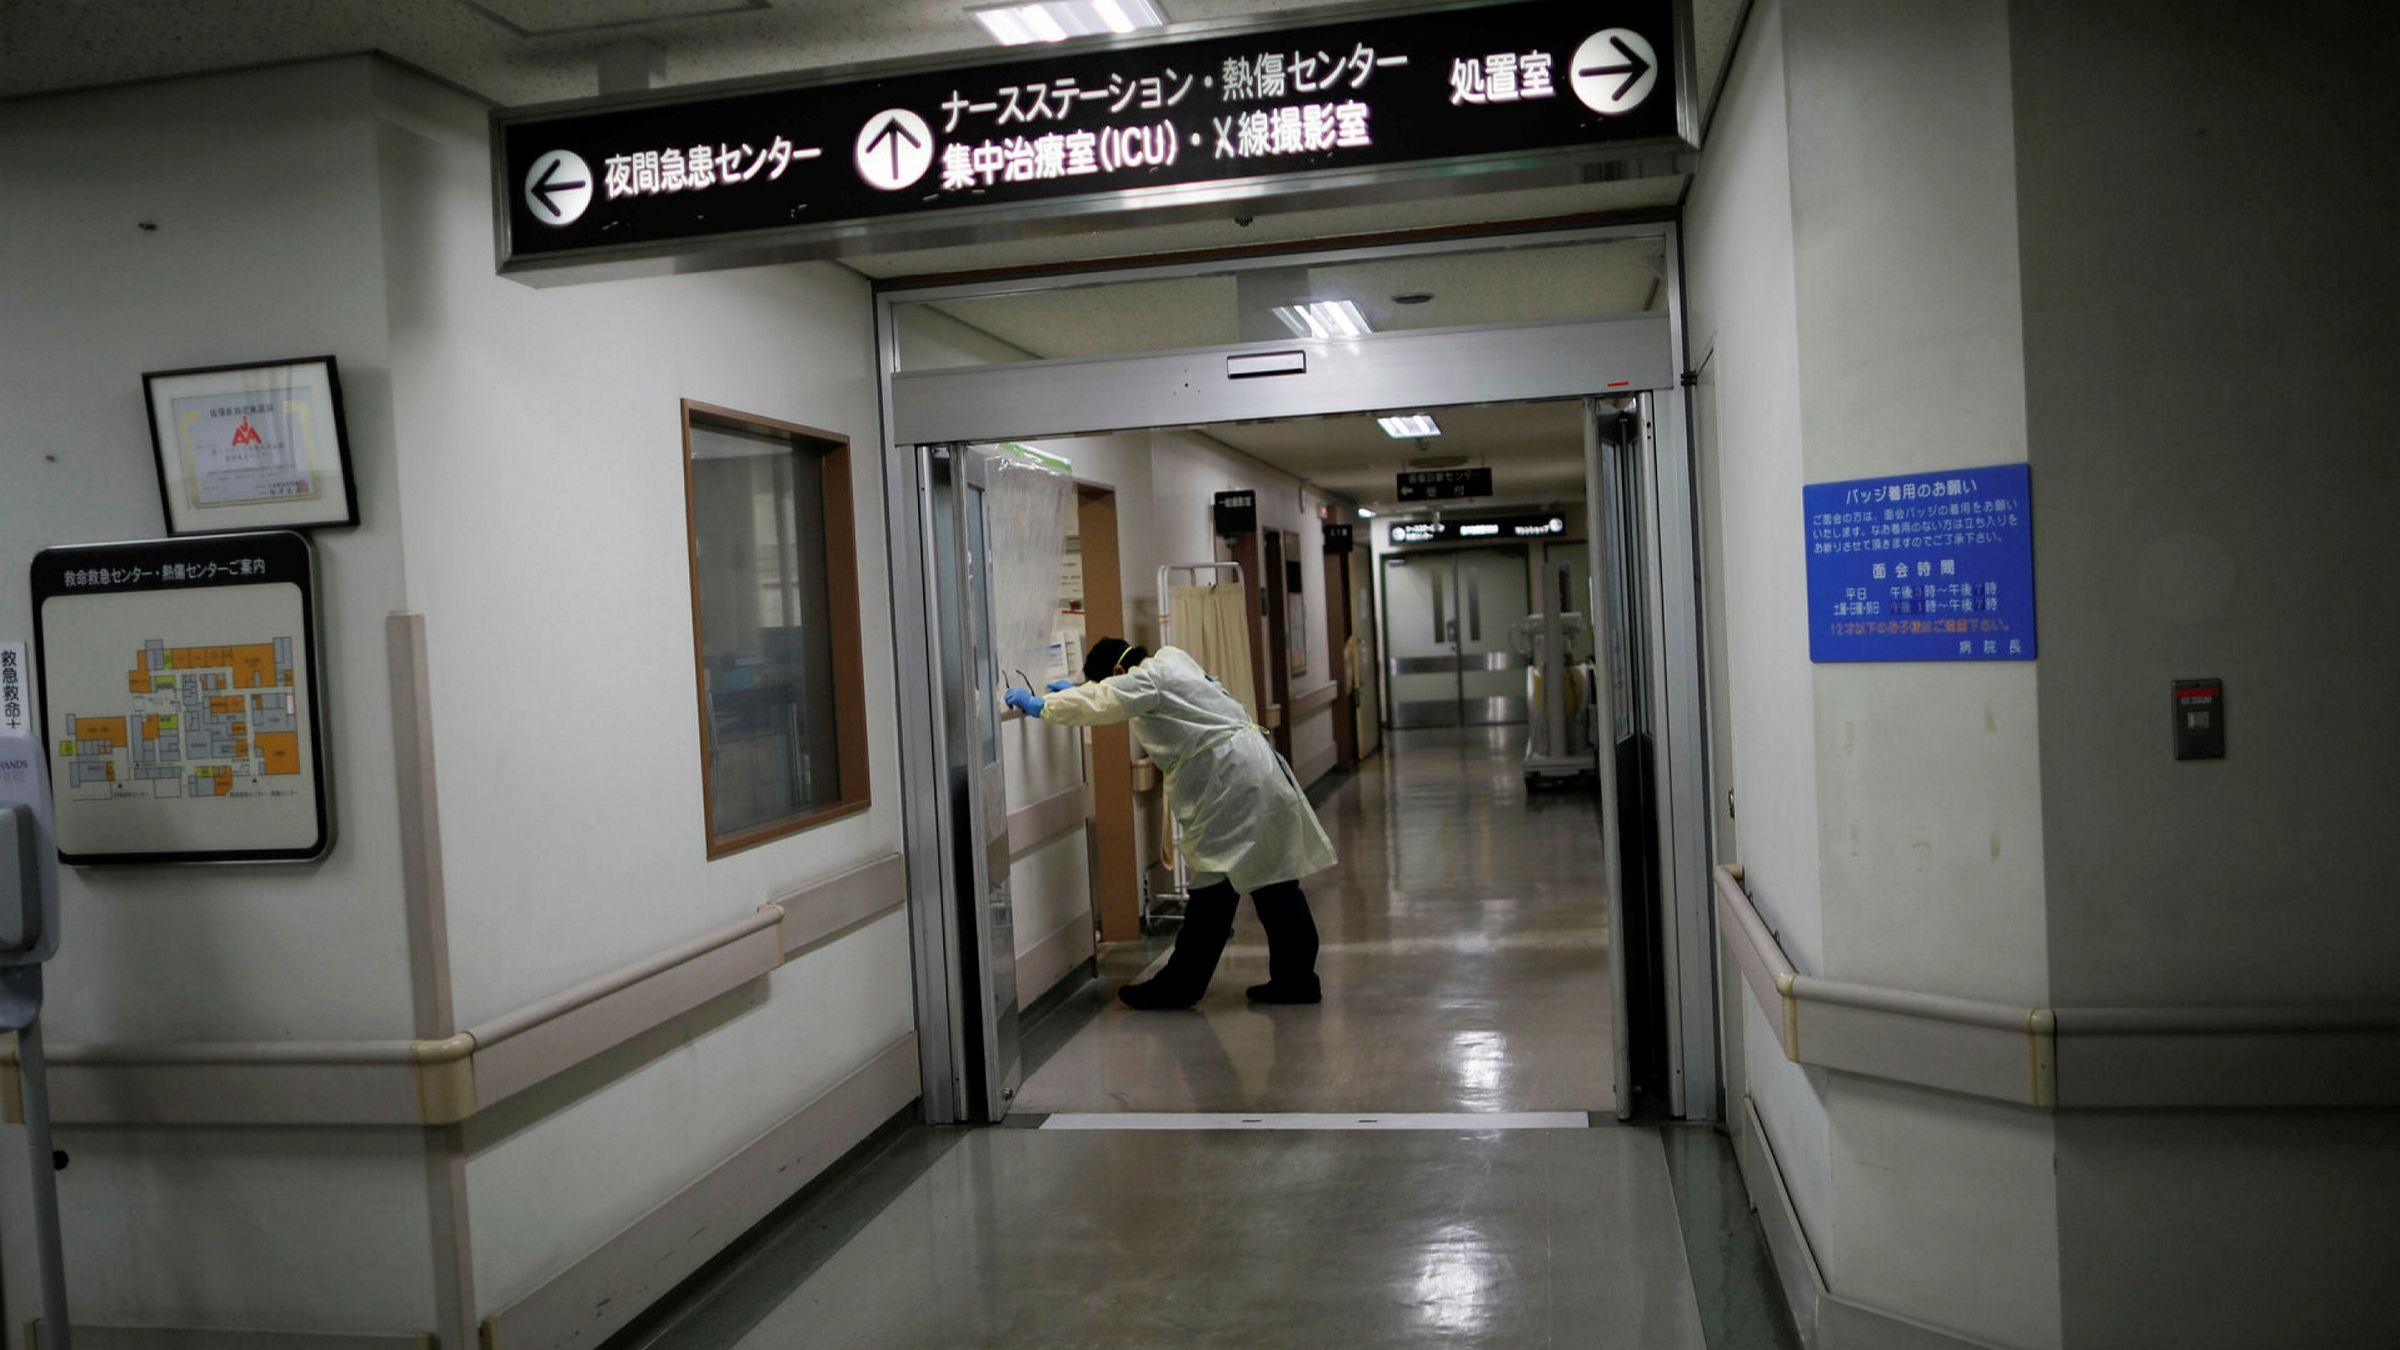 Tokyo's medical system enters 'critical stage' as COVID-19 cases climb